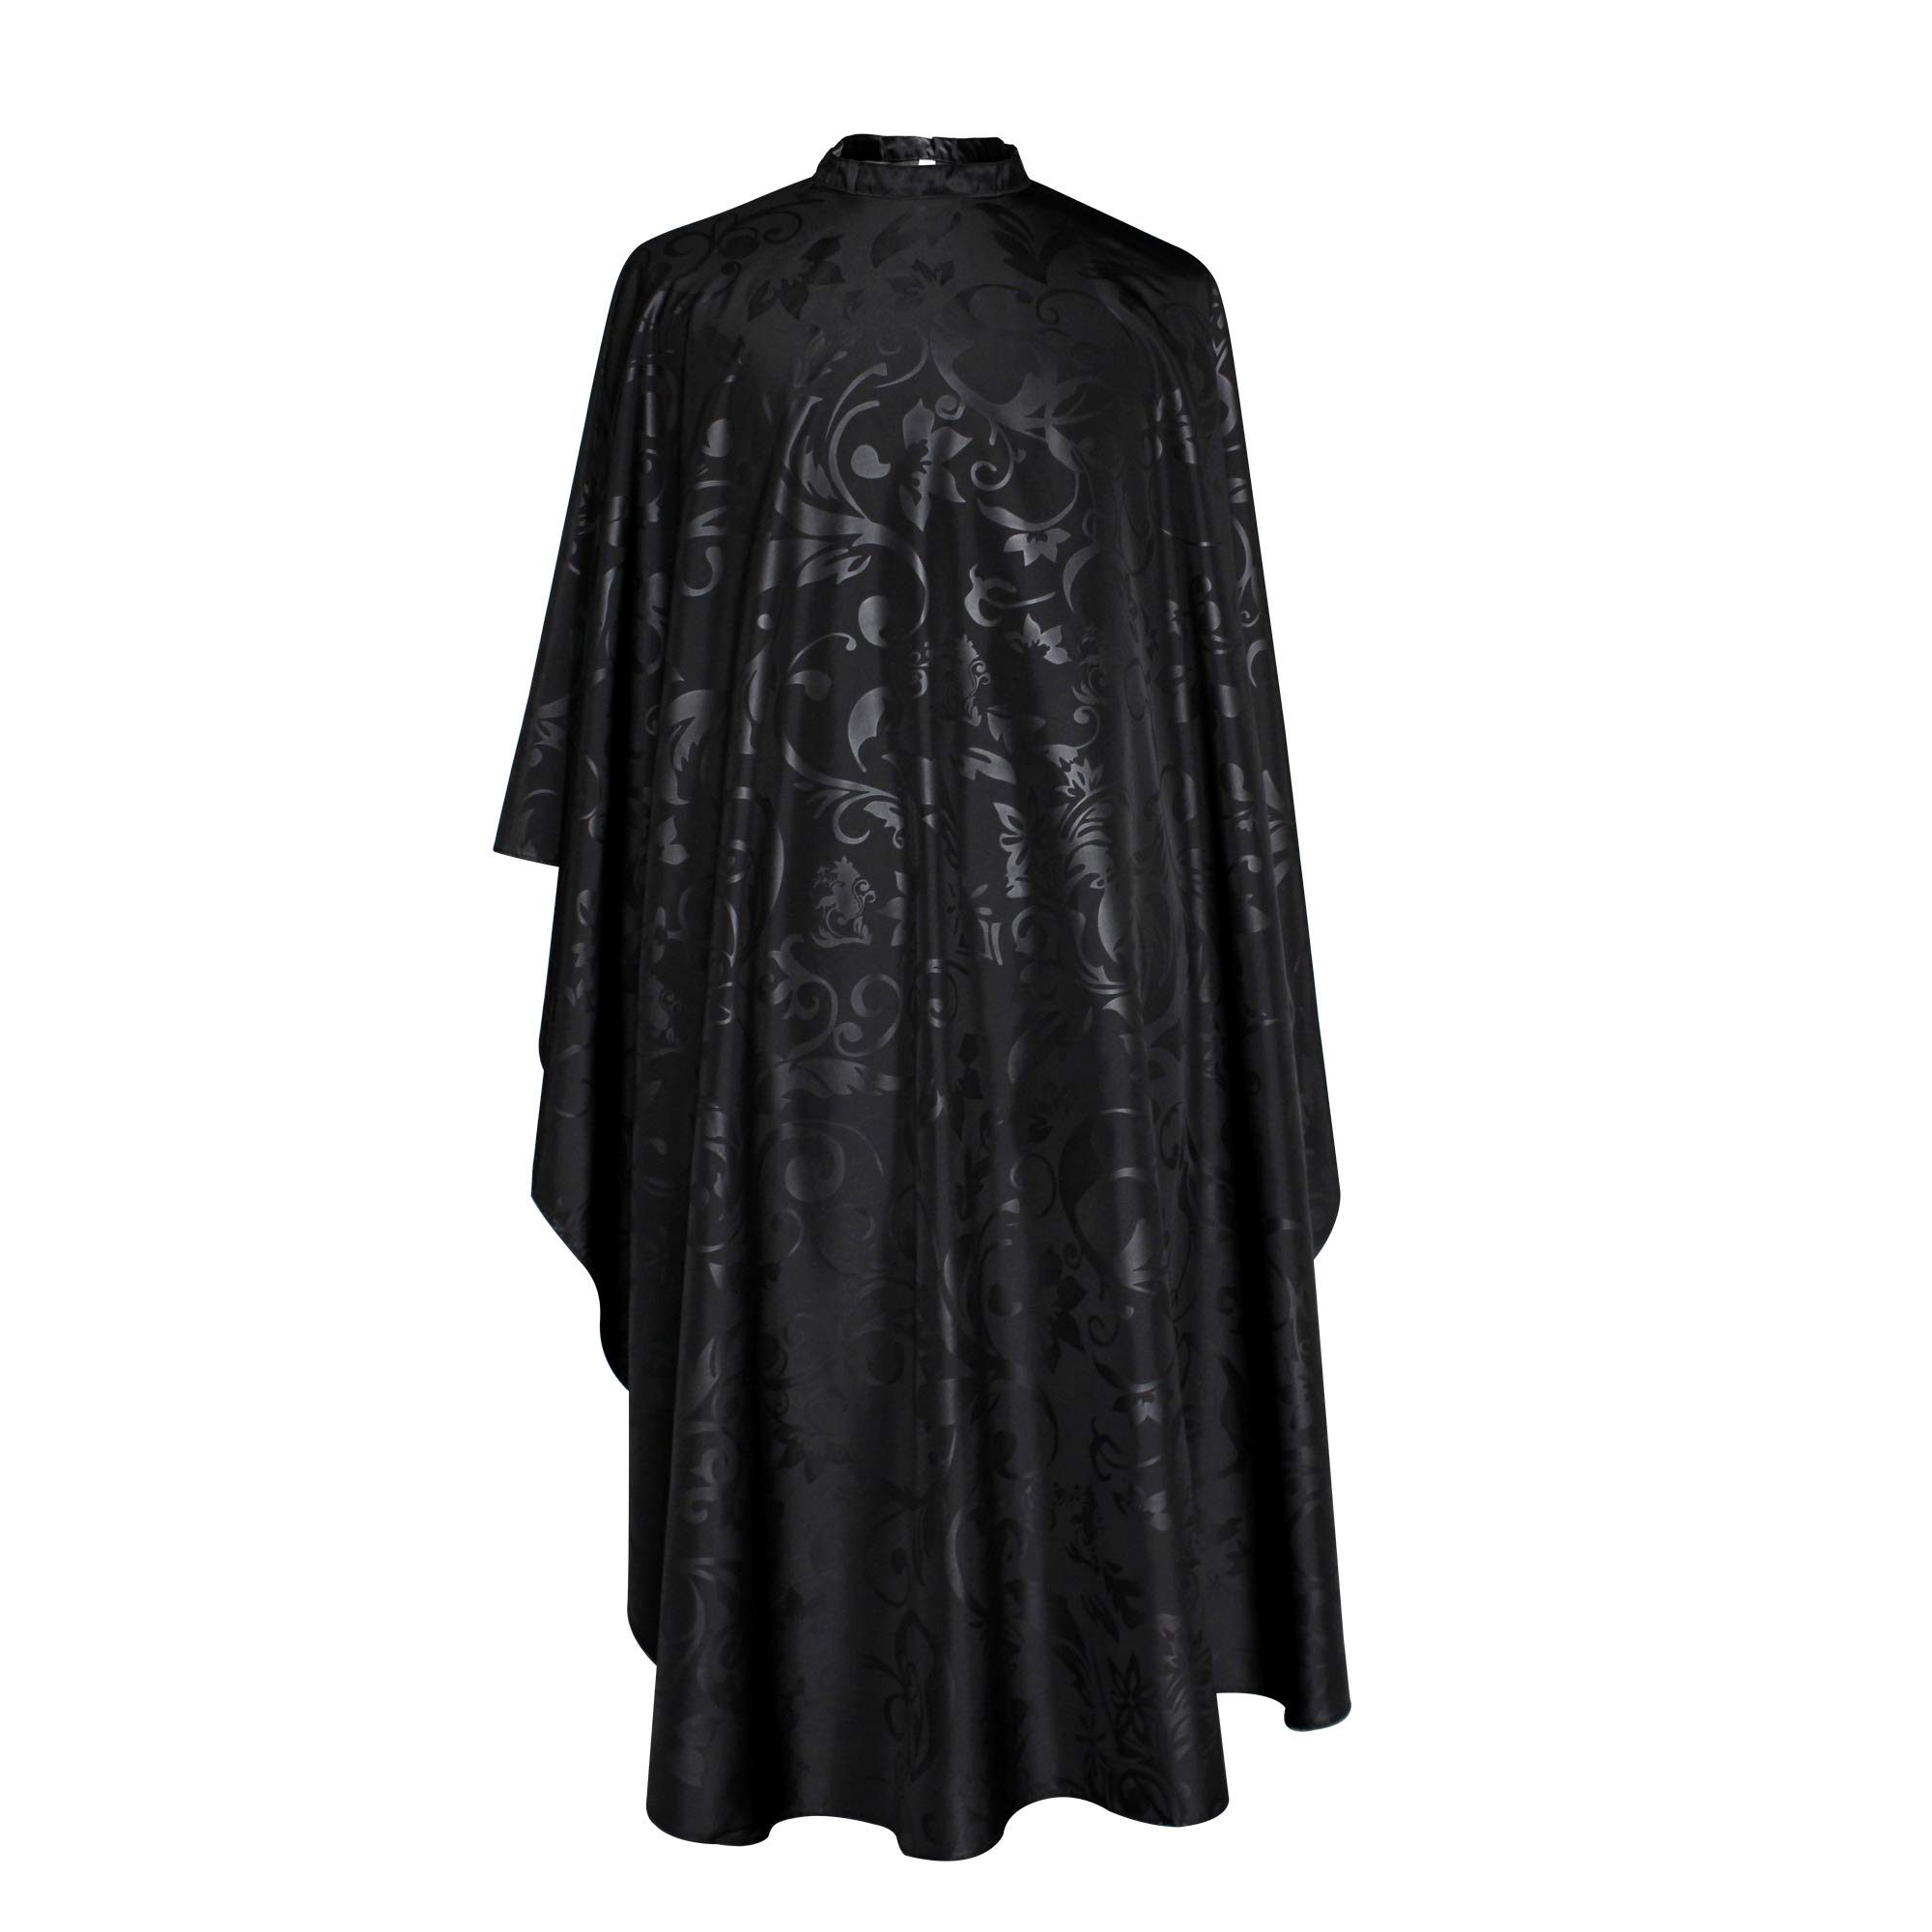 SMARTHAIR Professional Salon Cape Polyester Baber Cape Hair Cutting Cape,54''x62'',Black,C258001C by SMARTHAIR